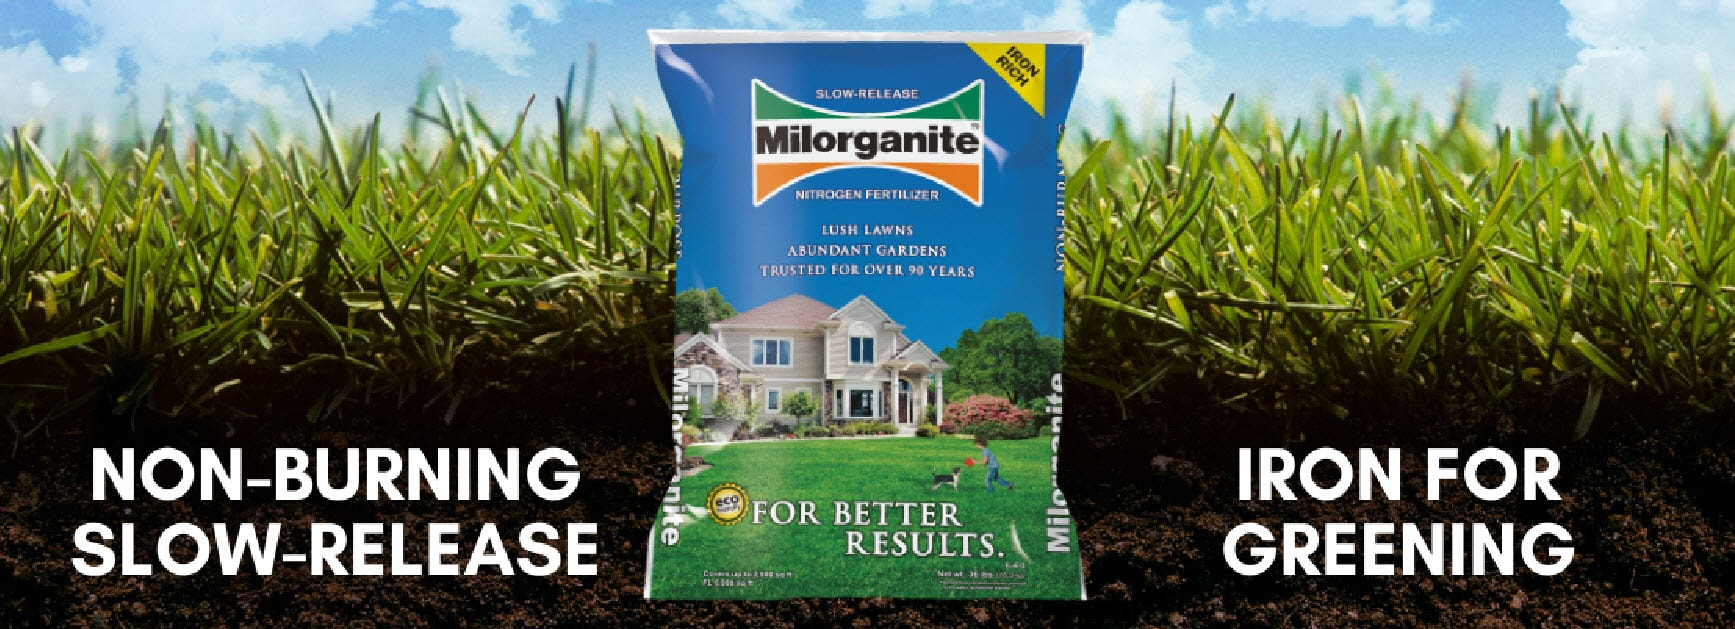 Use Milorganite To Fertilize Your Lawn This Guide Will Help You With Lication Rates And